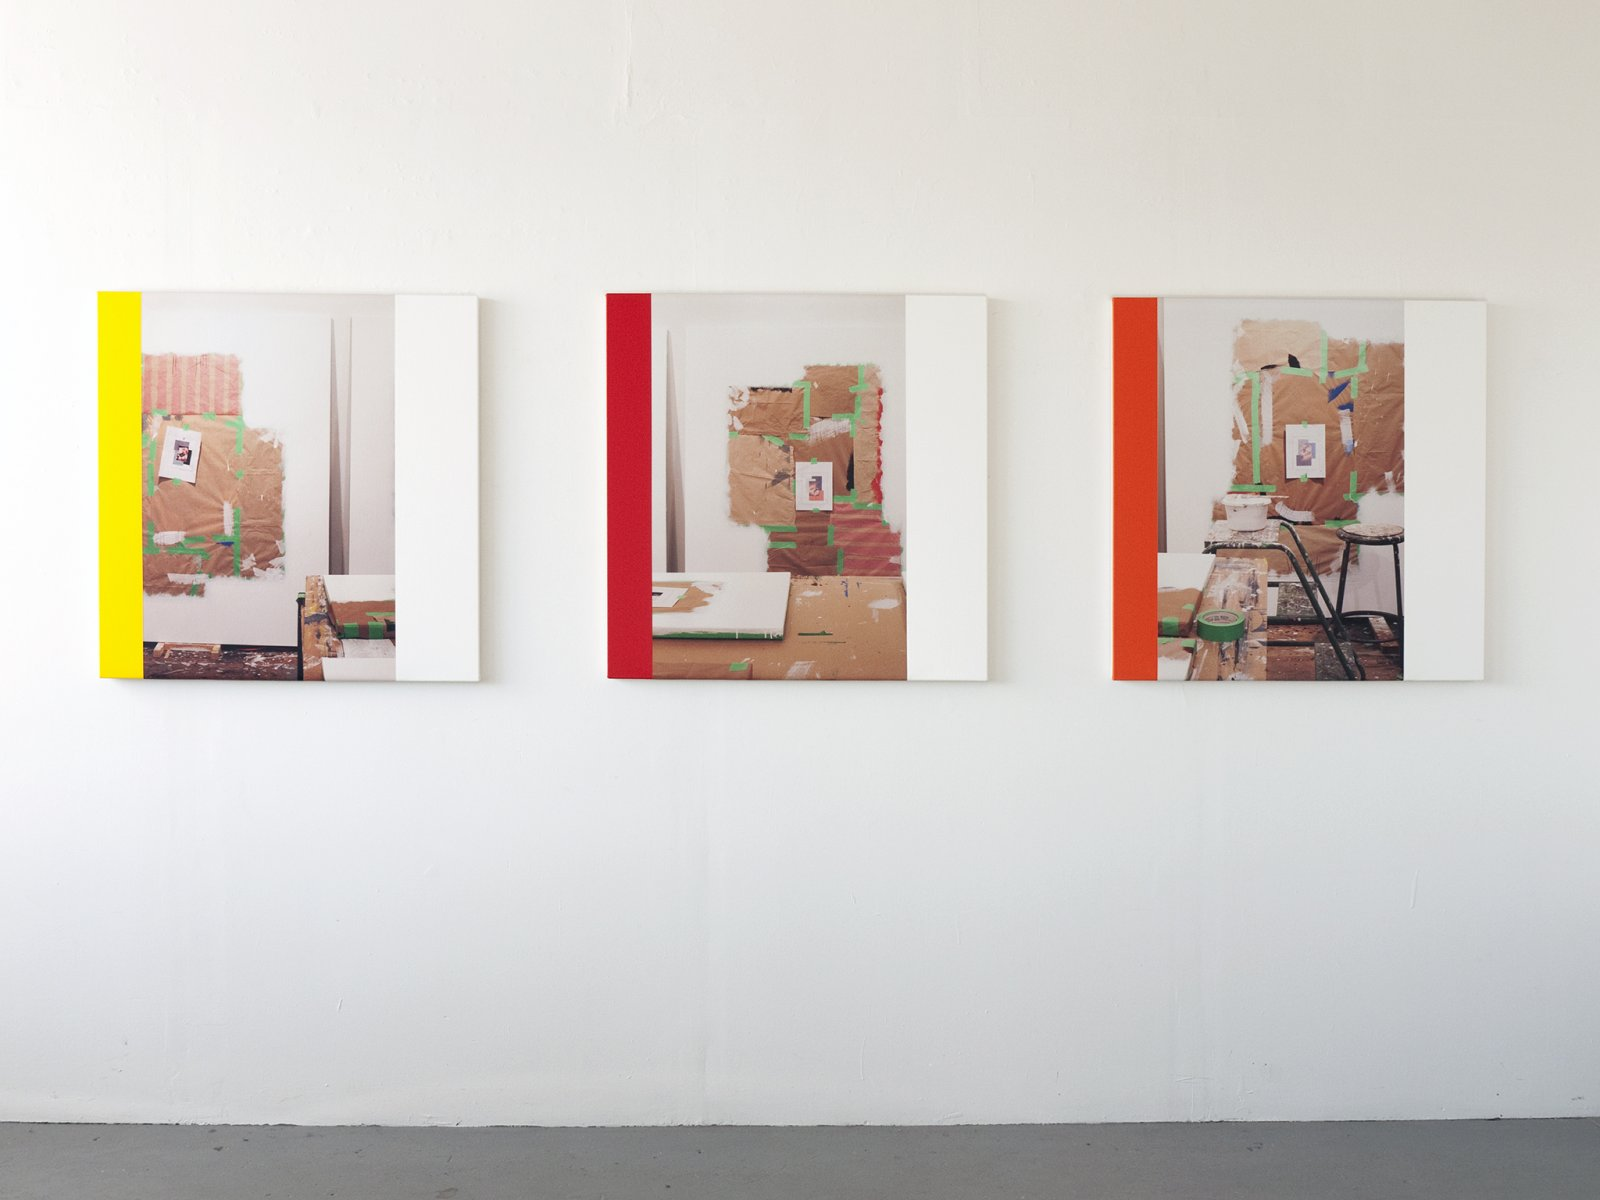 Ian Wallace,Abstract Composition (The Whites I–III),2012, photolaminate with acrylic on canvas, each 36 x 36 in. (91 x 91 cm)